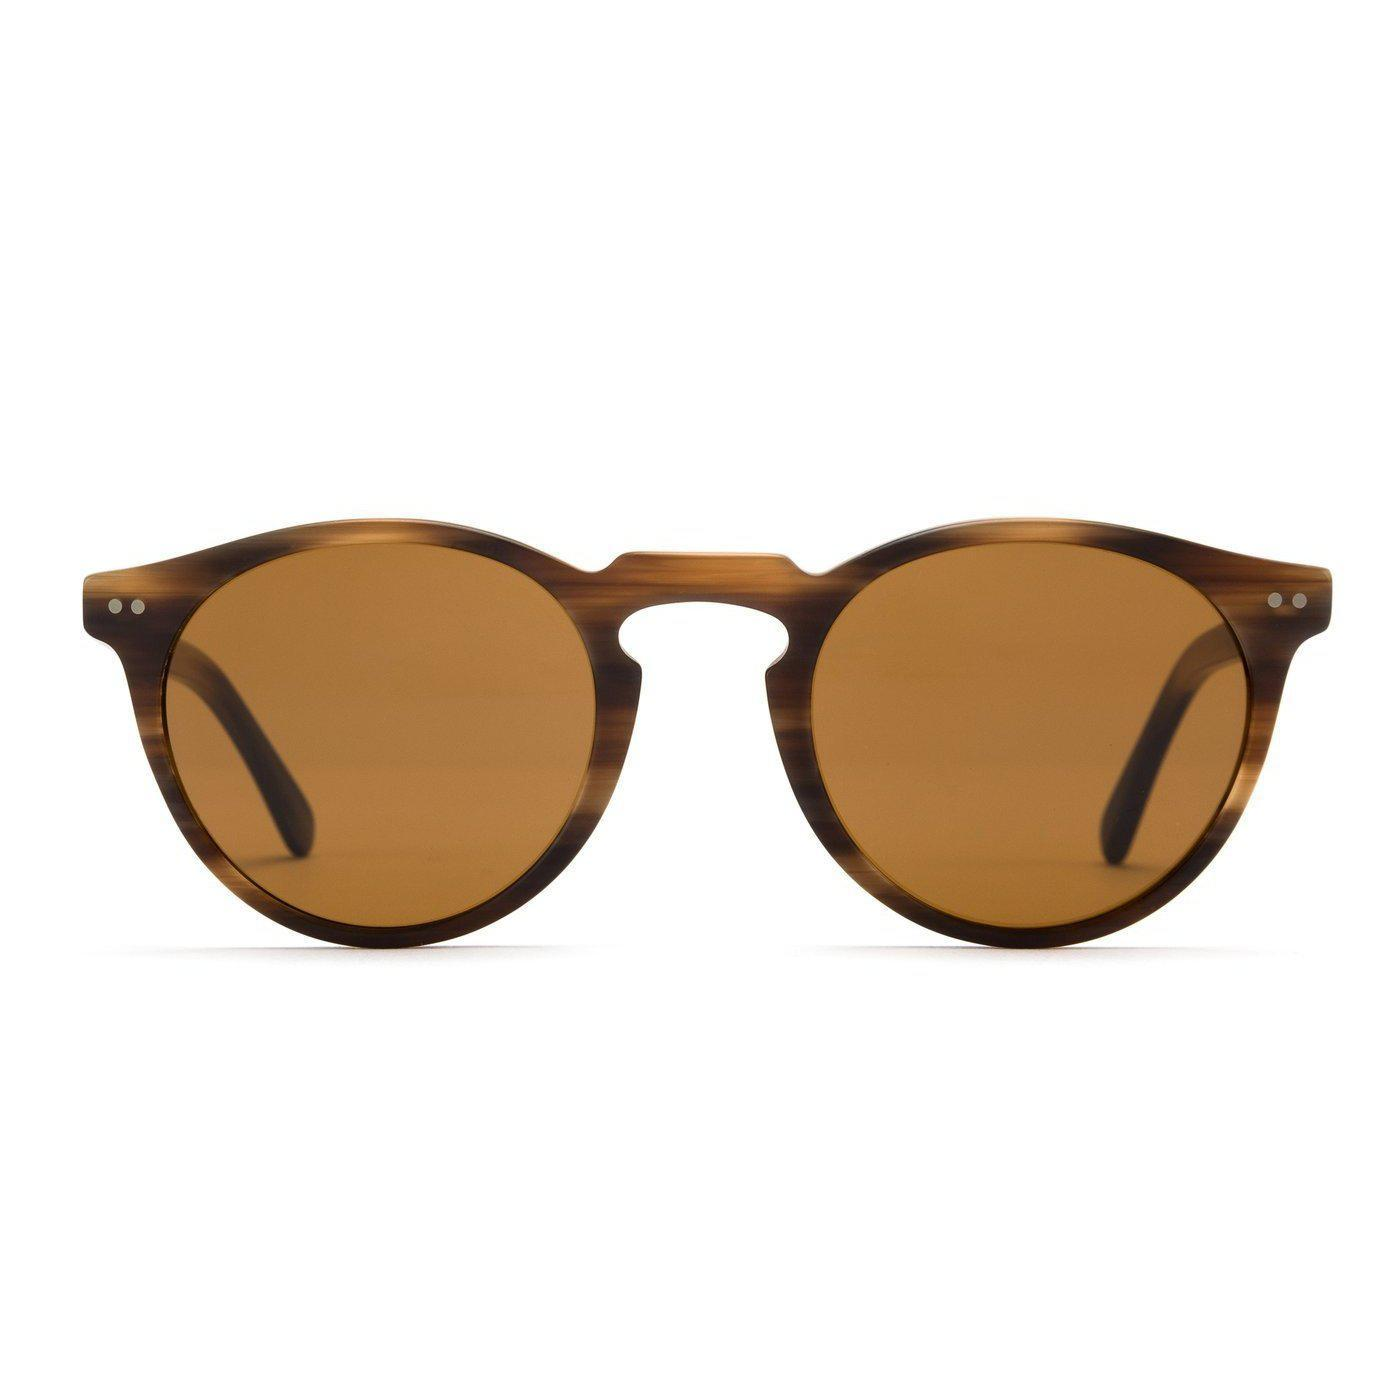 OMAR ECO OTIS SUNGLASSES-Big Winds